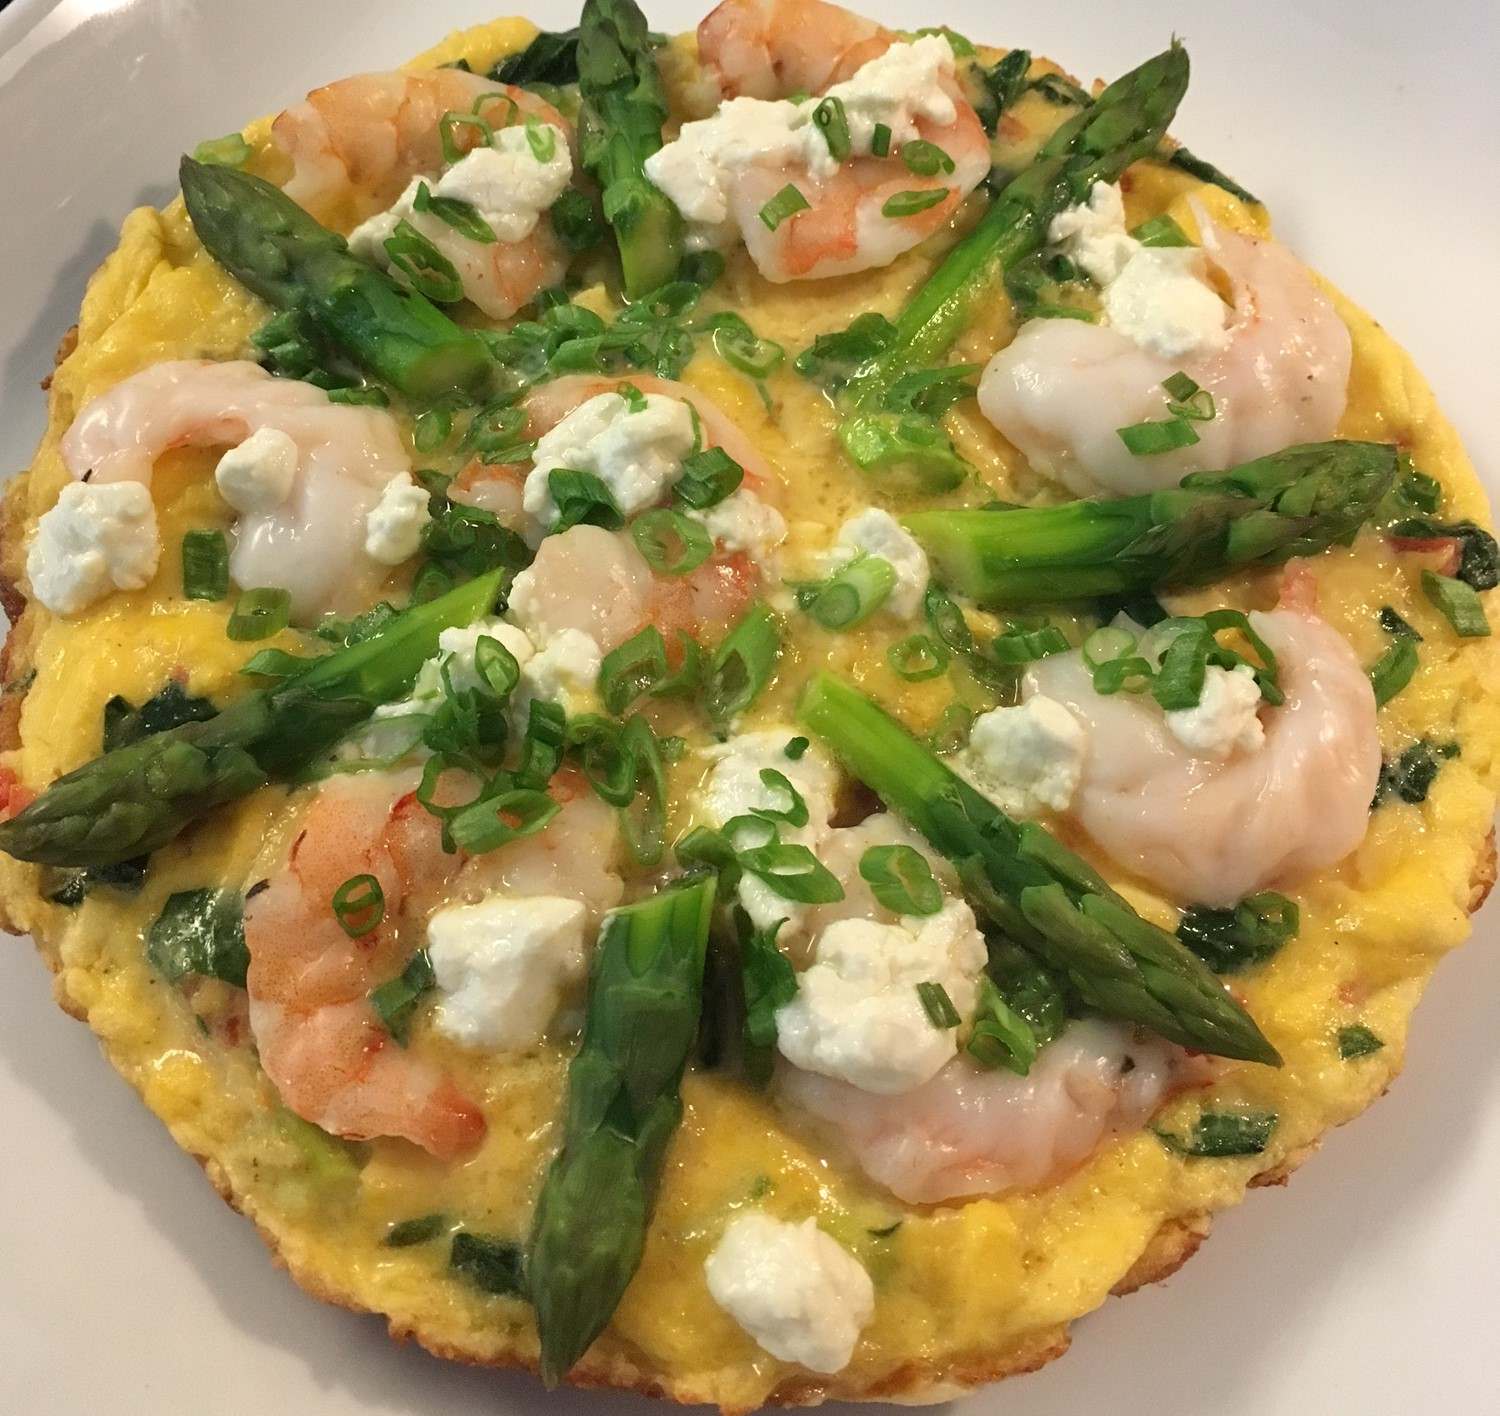 A serious Shrimp Frittata from Chef Braldey Czajka, Systems Executive Chef with Children's Healthcare of Atlanta & MHC. This dish will fit in your New Year's Diet!